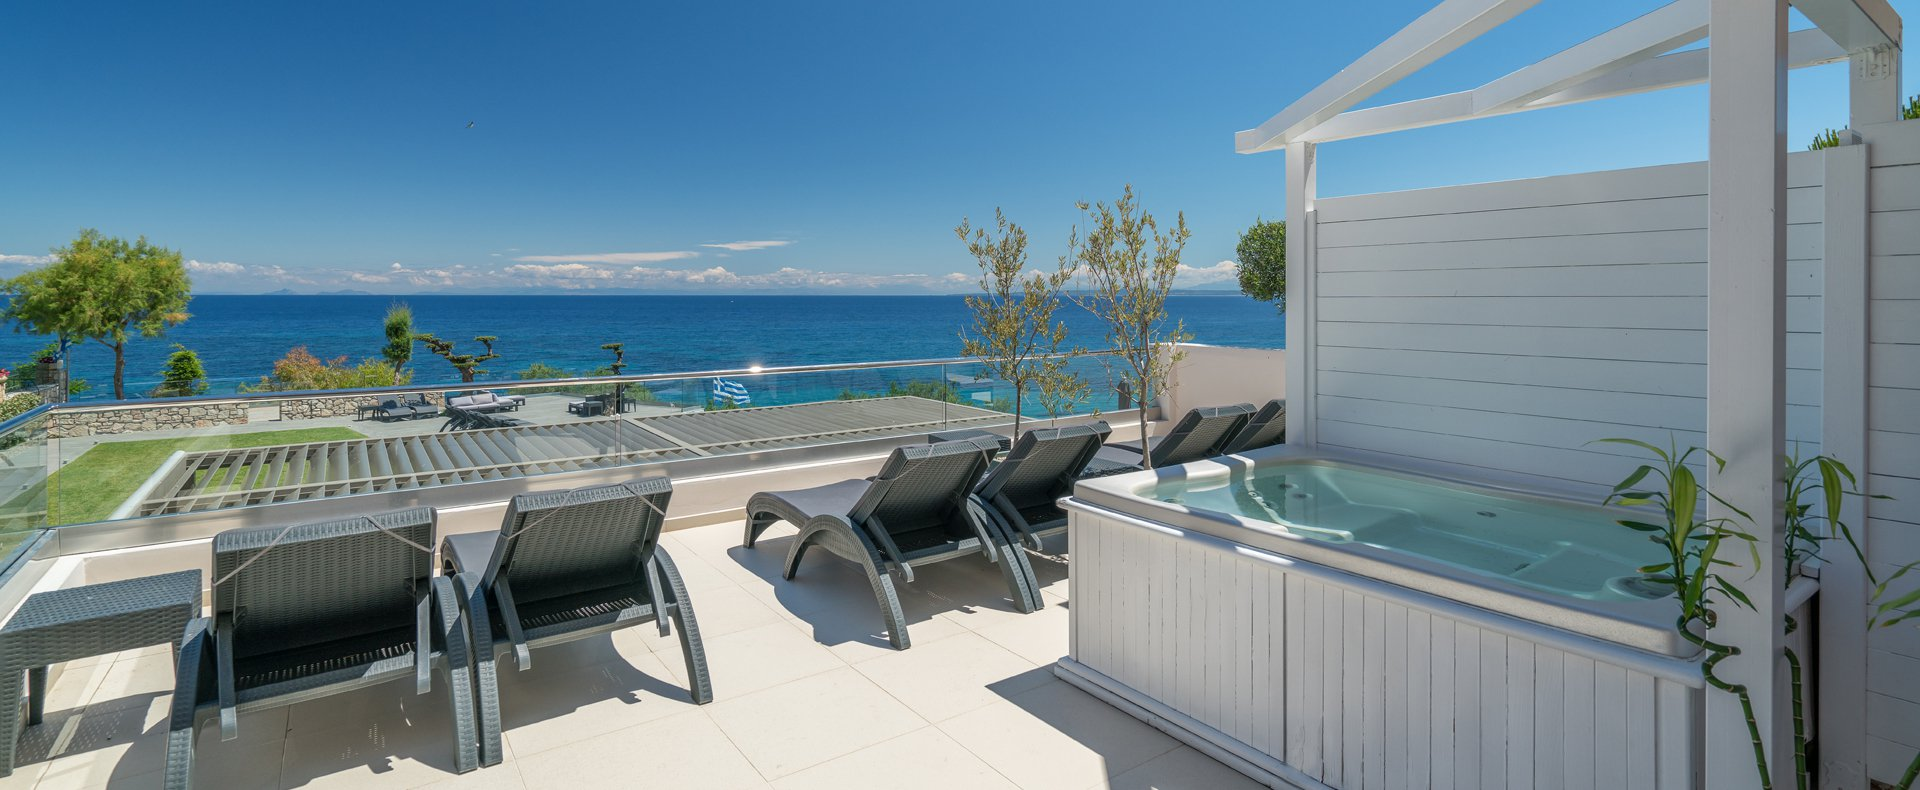 Veranda with sunbeds facing the Ionian Sea at Kymothoe Elite Suites in Zakynthos